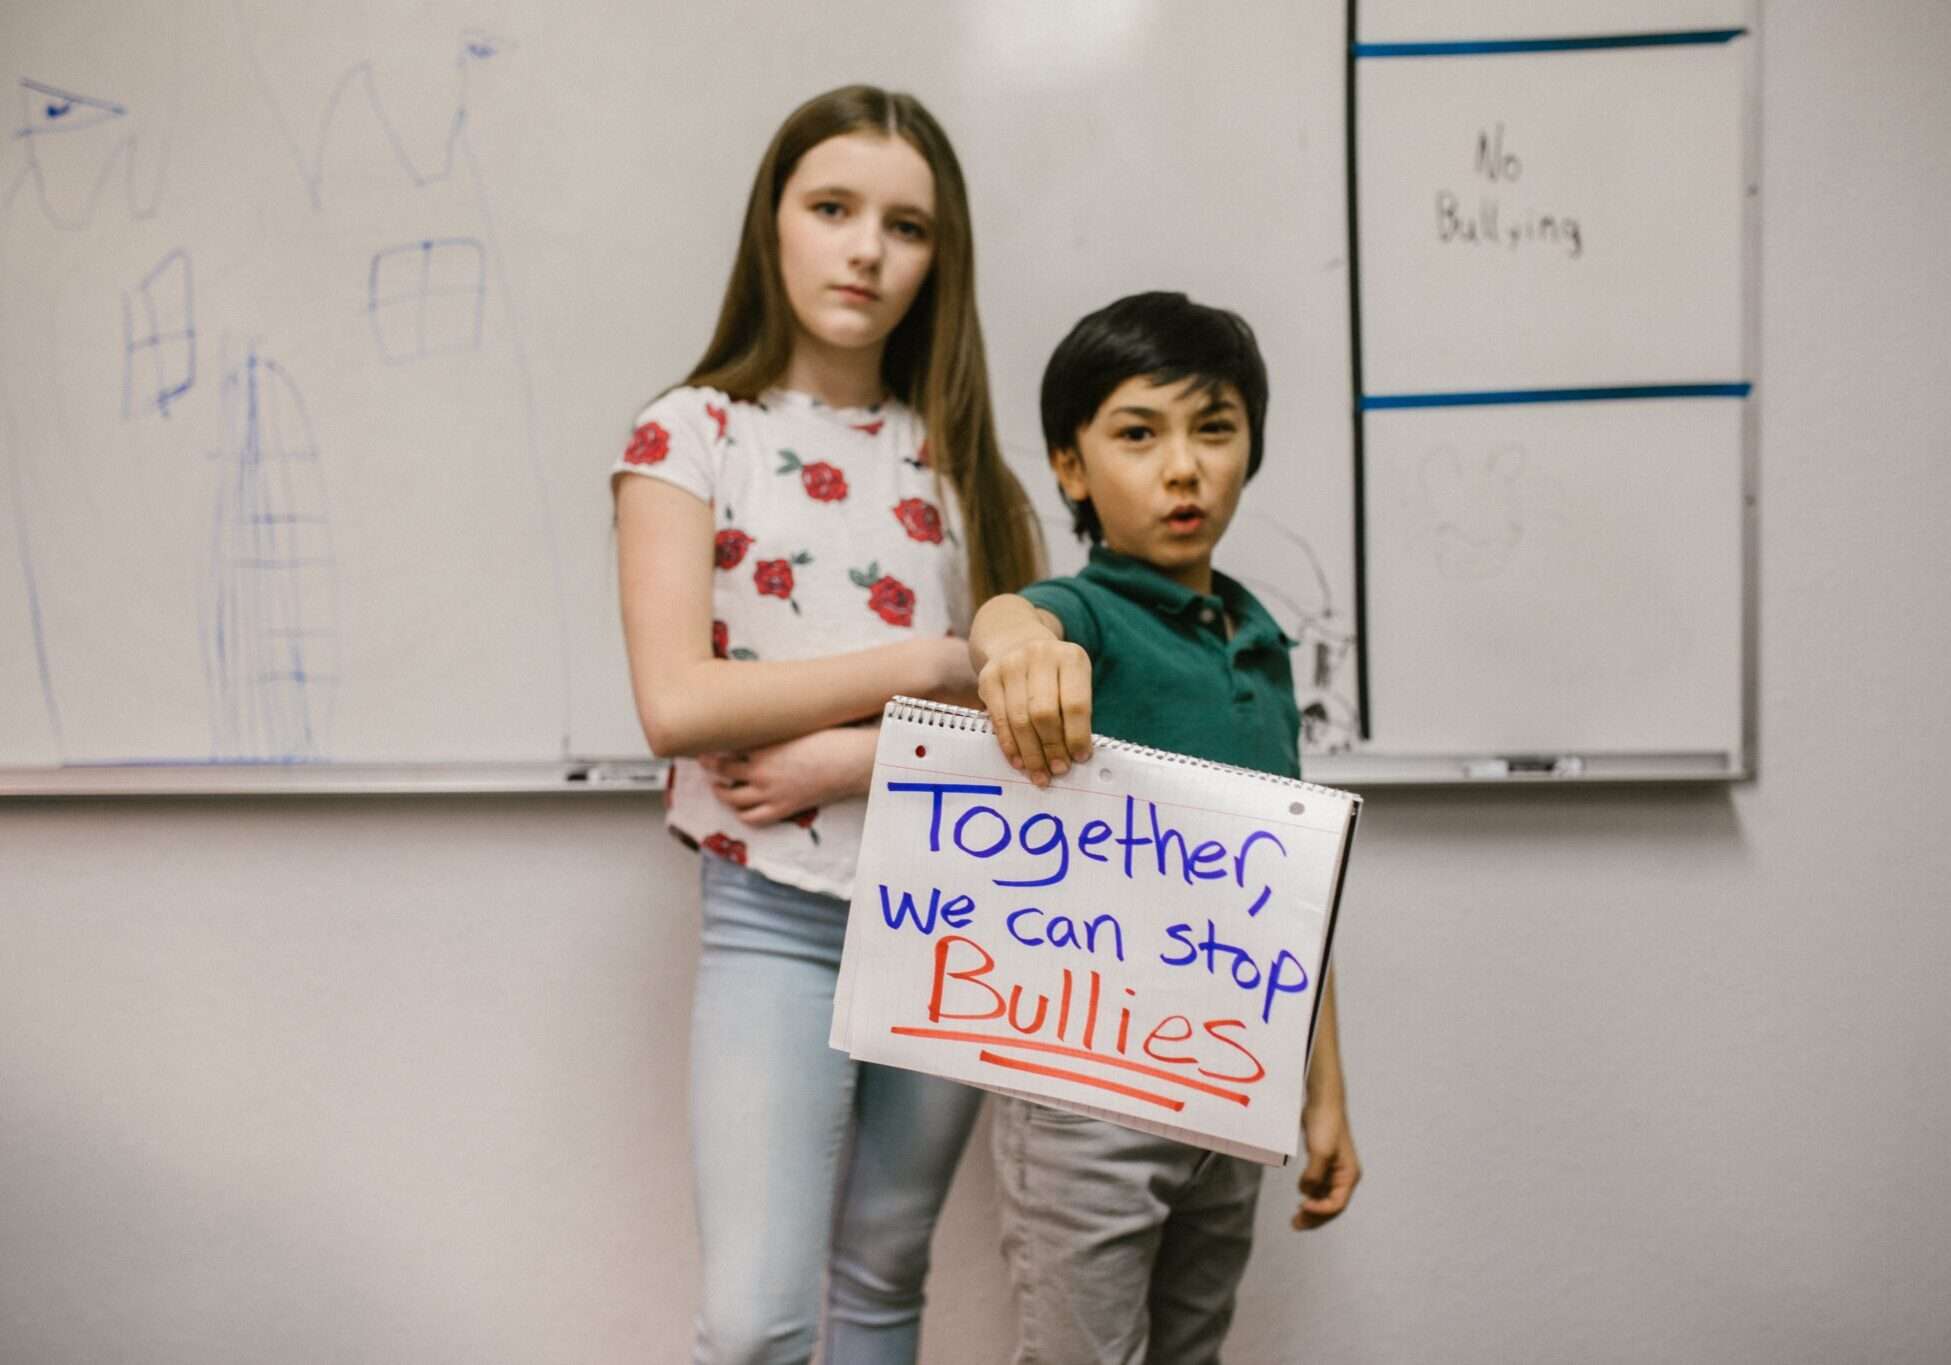 Children-holding-sign-together-we-can-stop-bullies